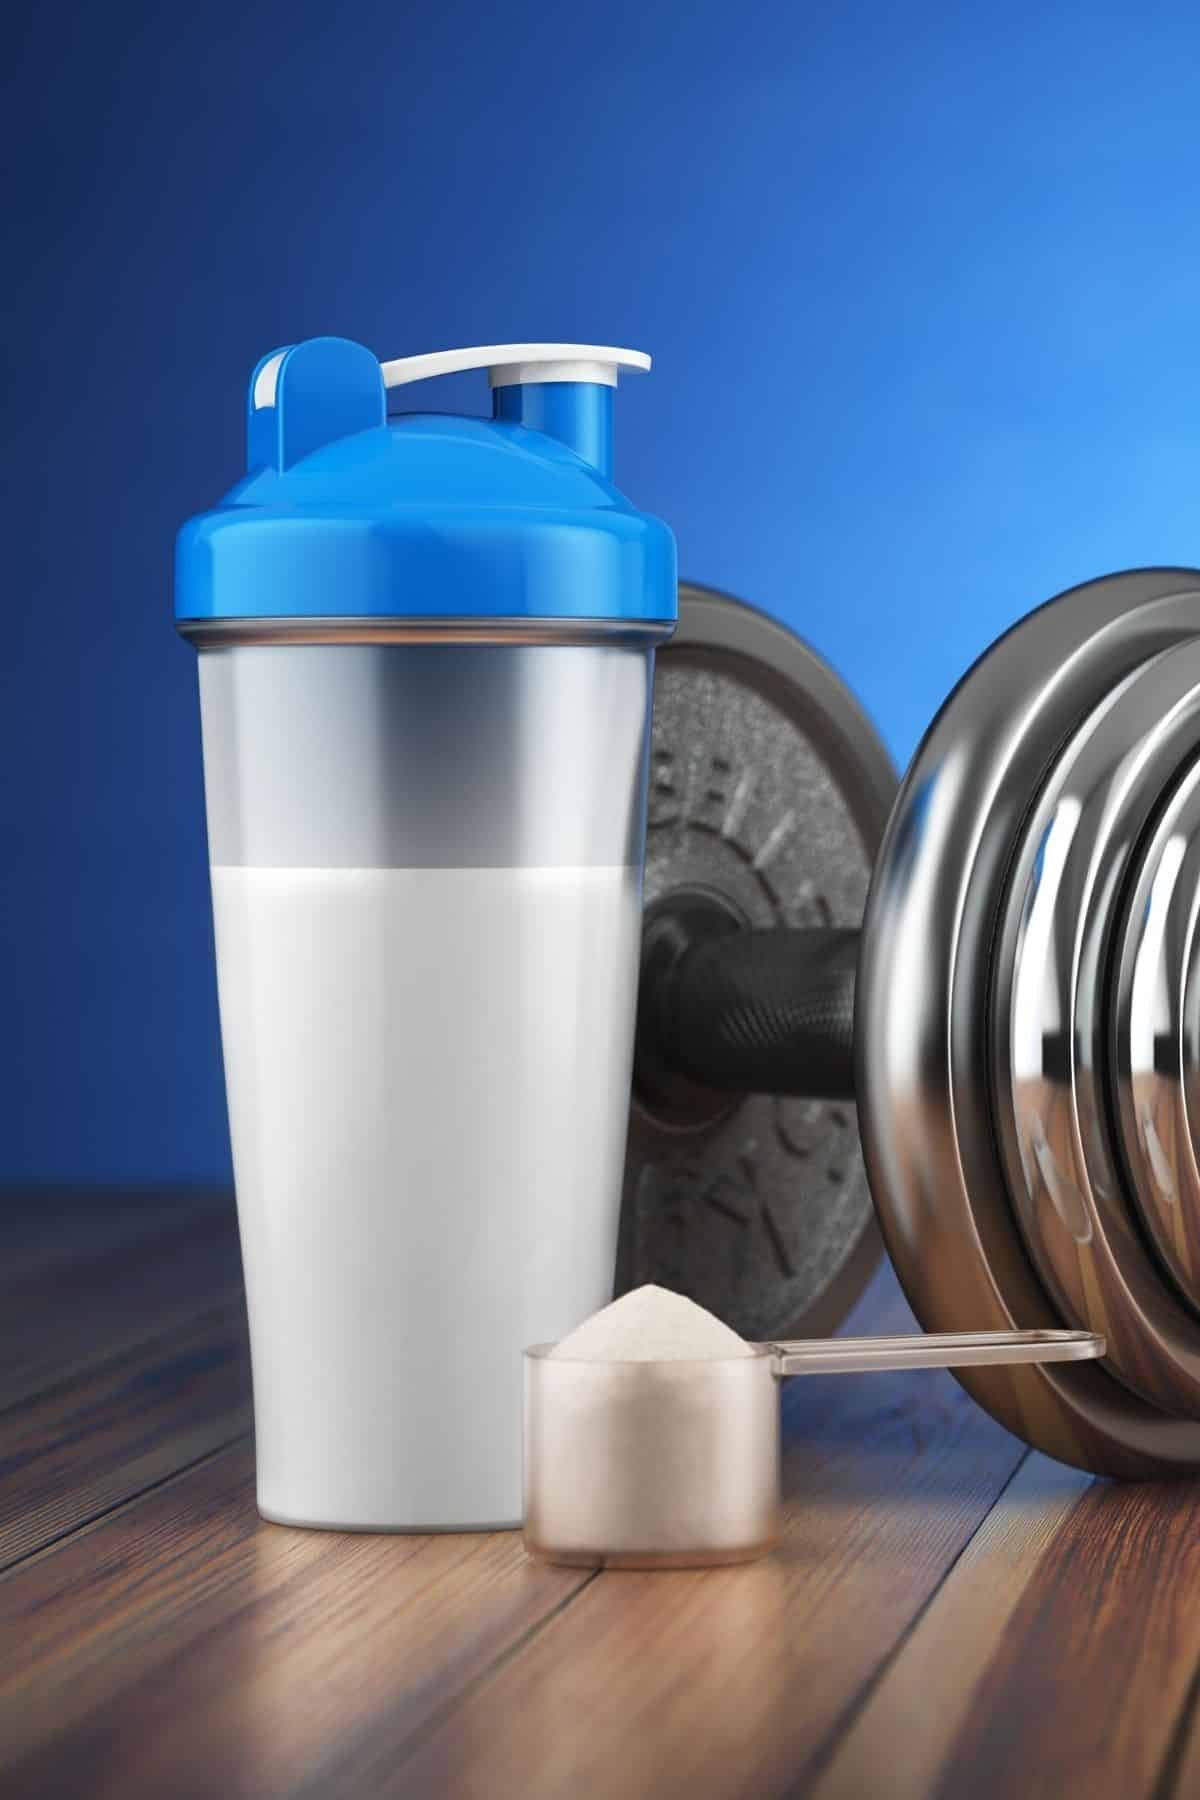 shaker bottle with a scoop of protein powder next to a dumbbell for working out